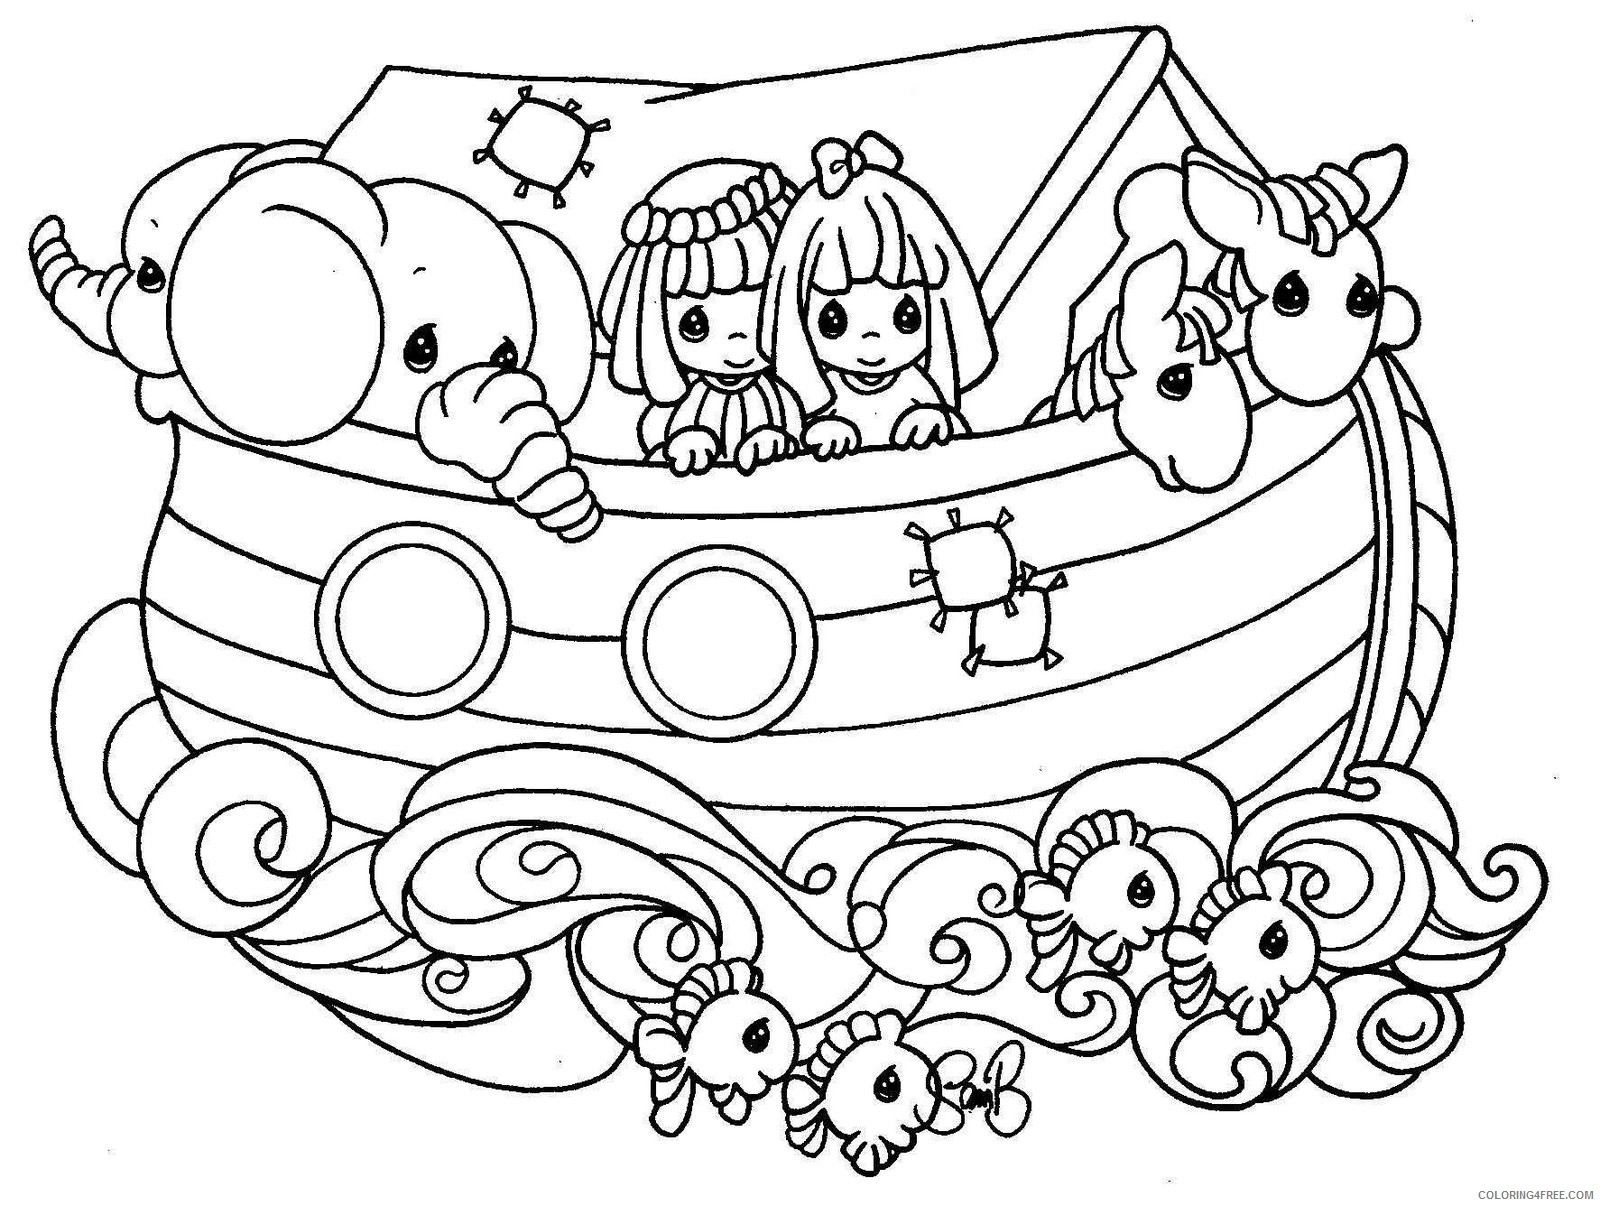 precious moments coloring pages bible Coloring4free - Coloring4Free.com